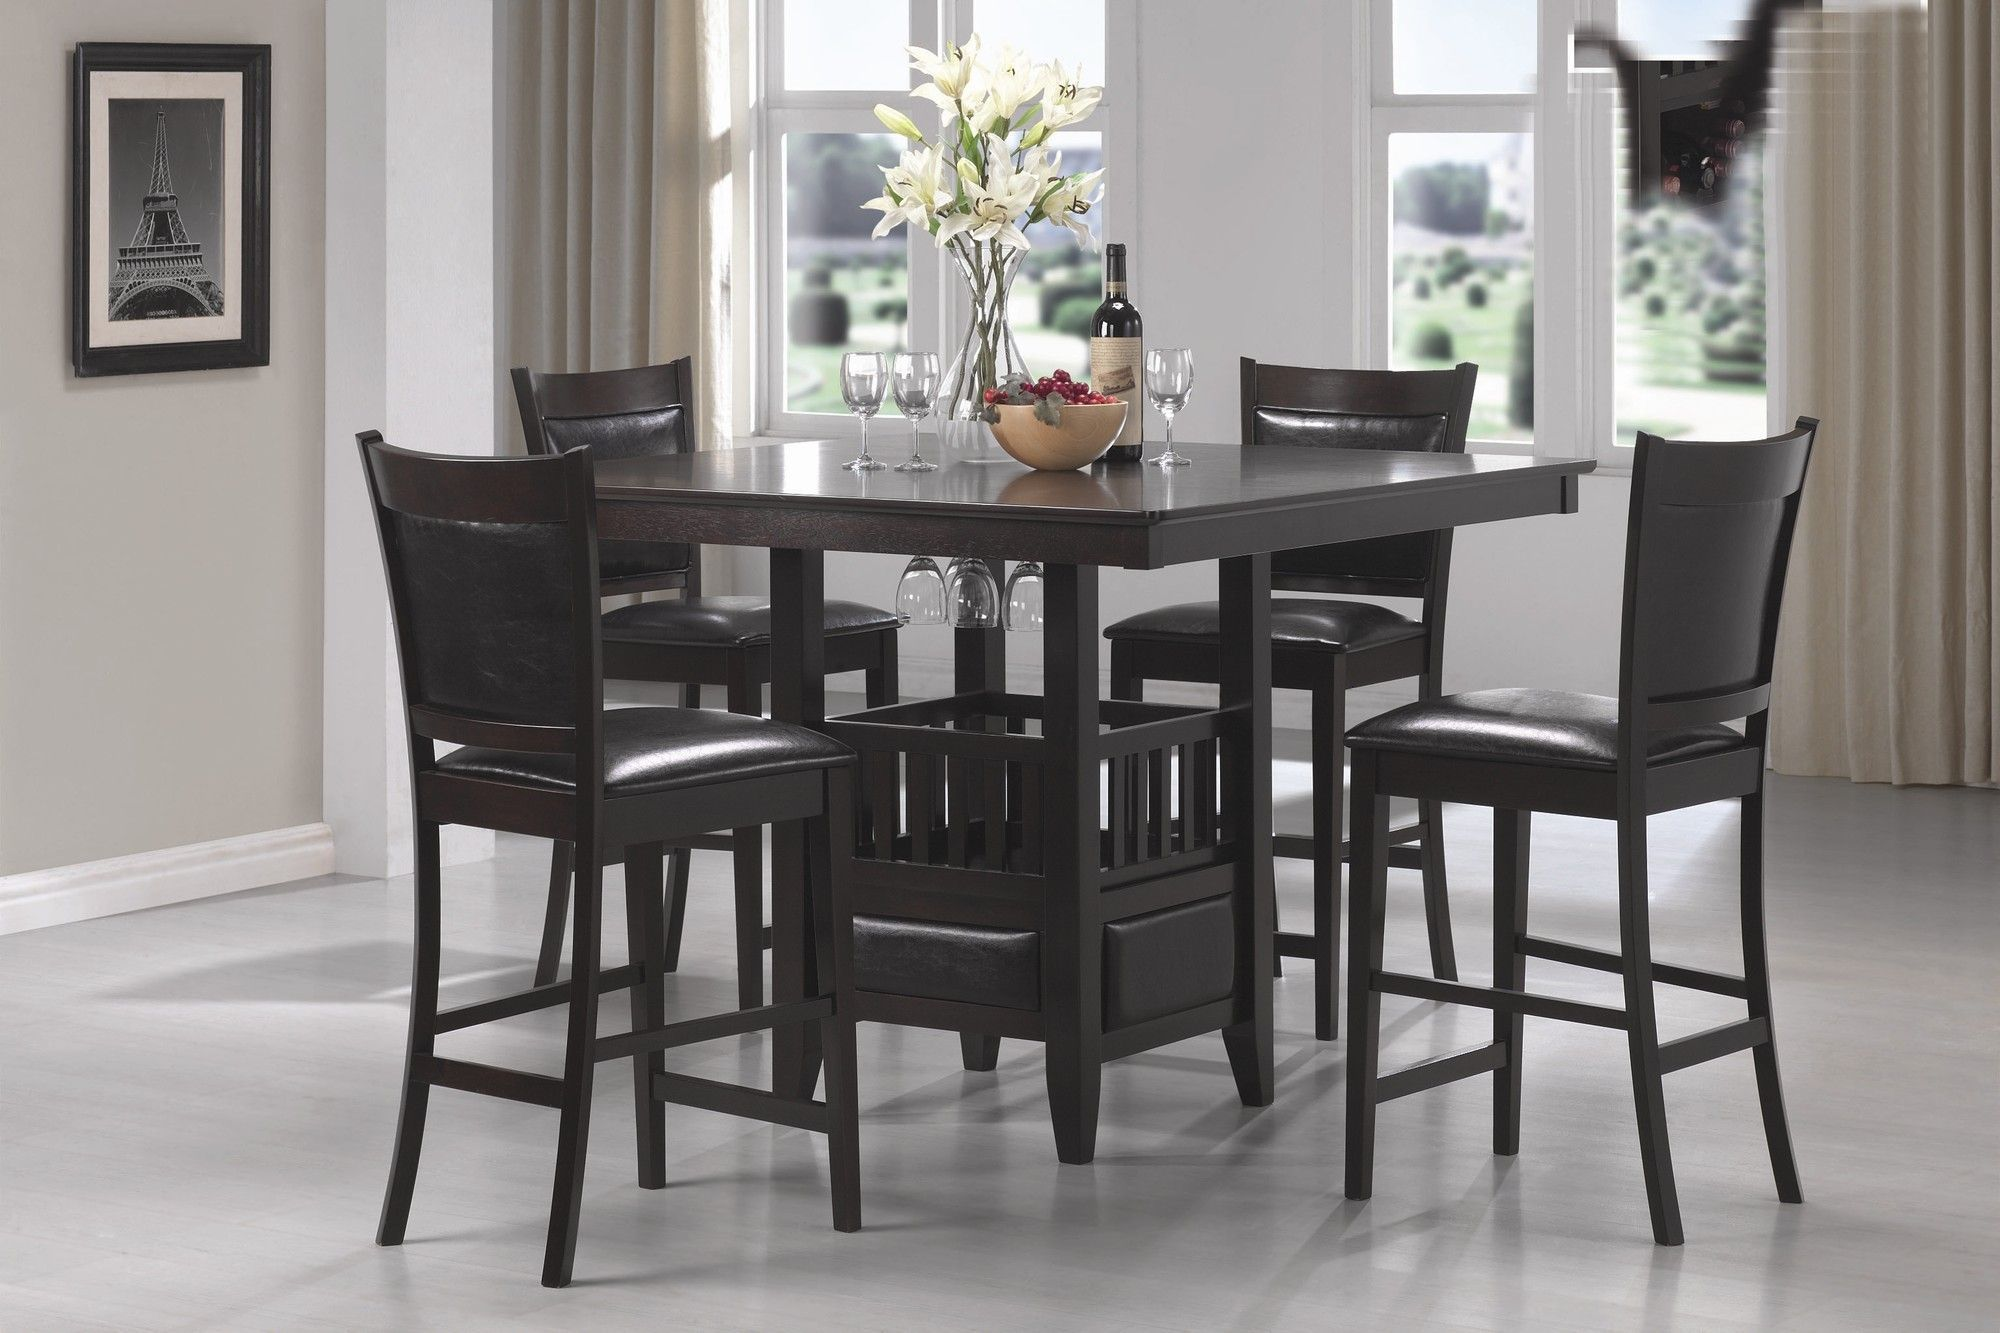 Greenwood Counter Height Dining Table Greenwood Counter